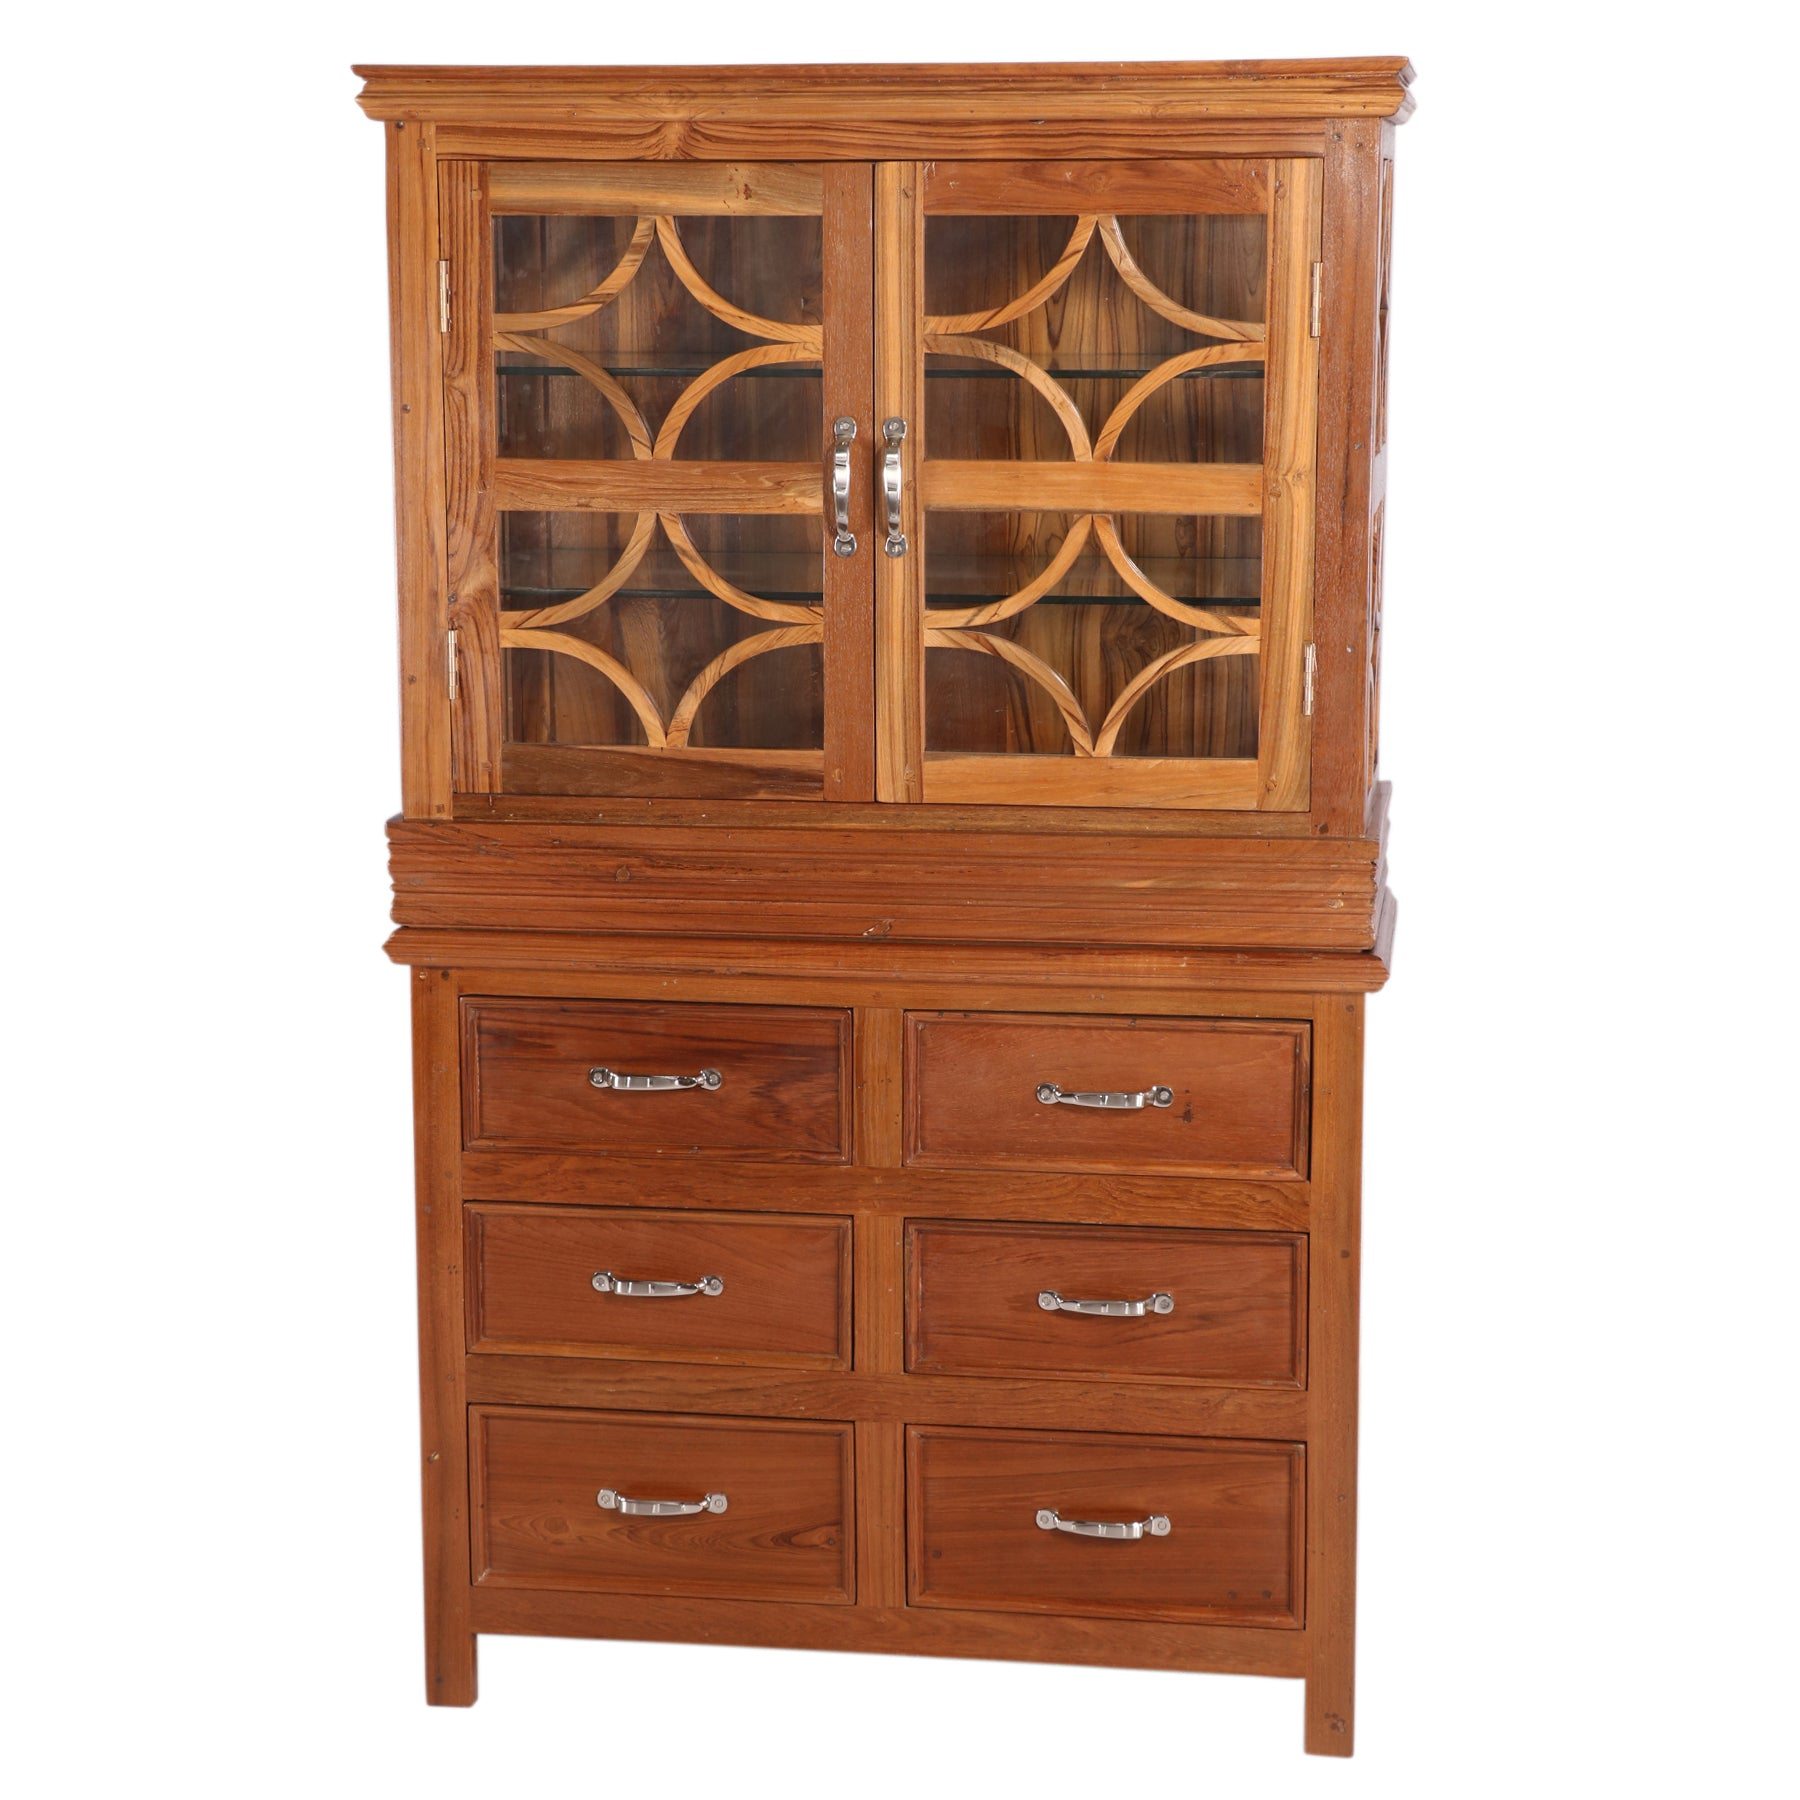 Accent Chest and Drawer Cabinet - Woodsala